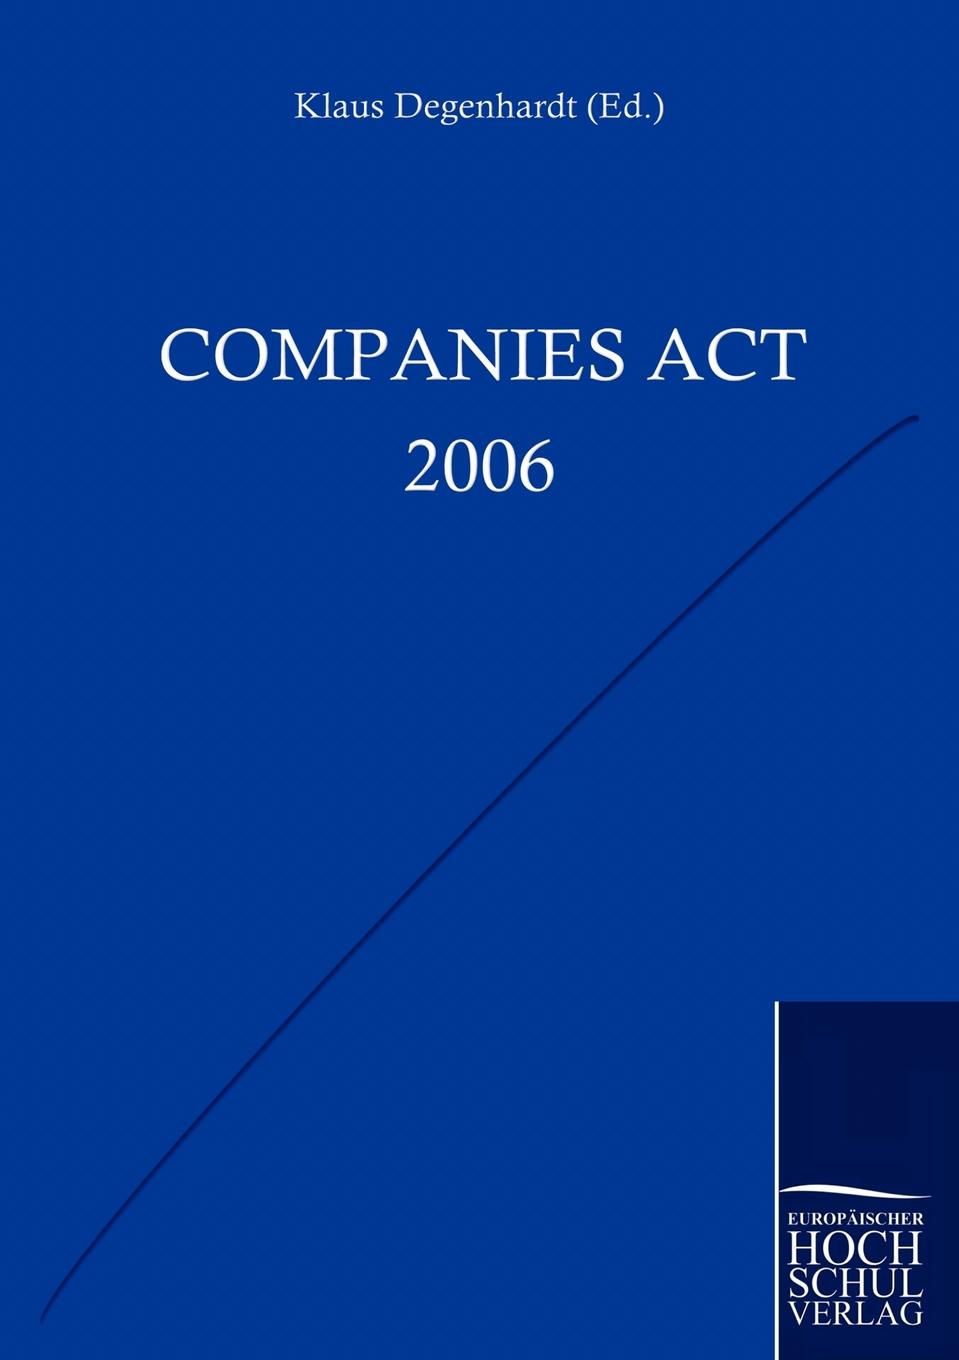 Companies Act 2006 veronika gaßner the united kingdom and the european migrant crisis 2015 16 public dialogue and government action